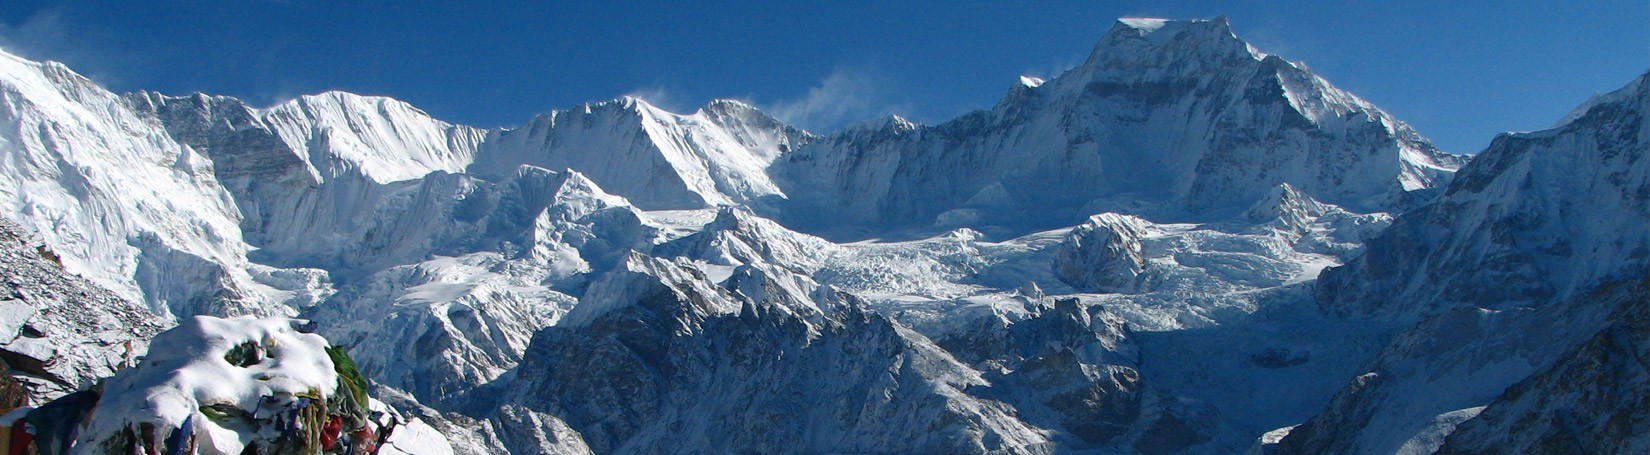 Mount Everest View from Gokyo Ri